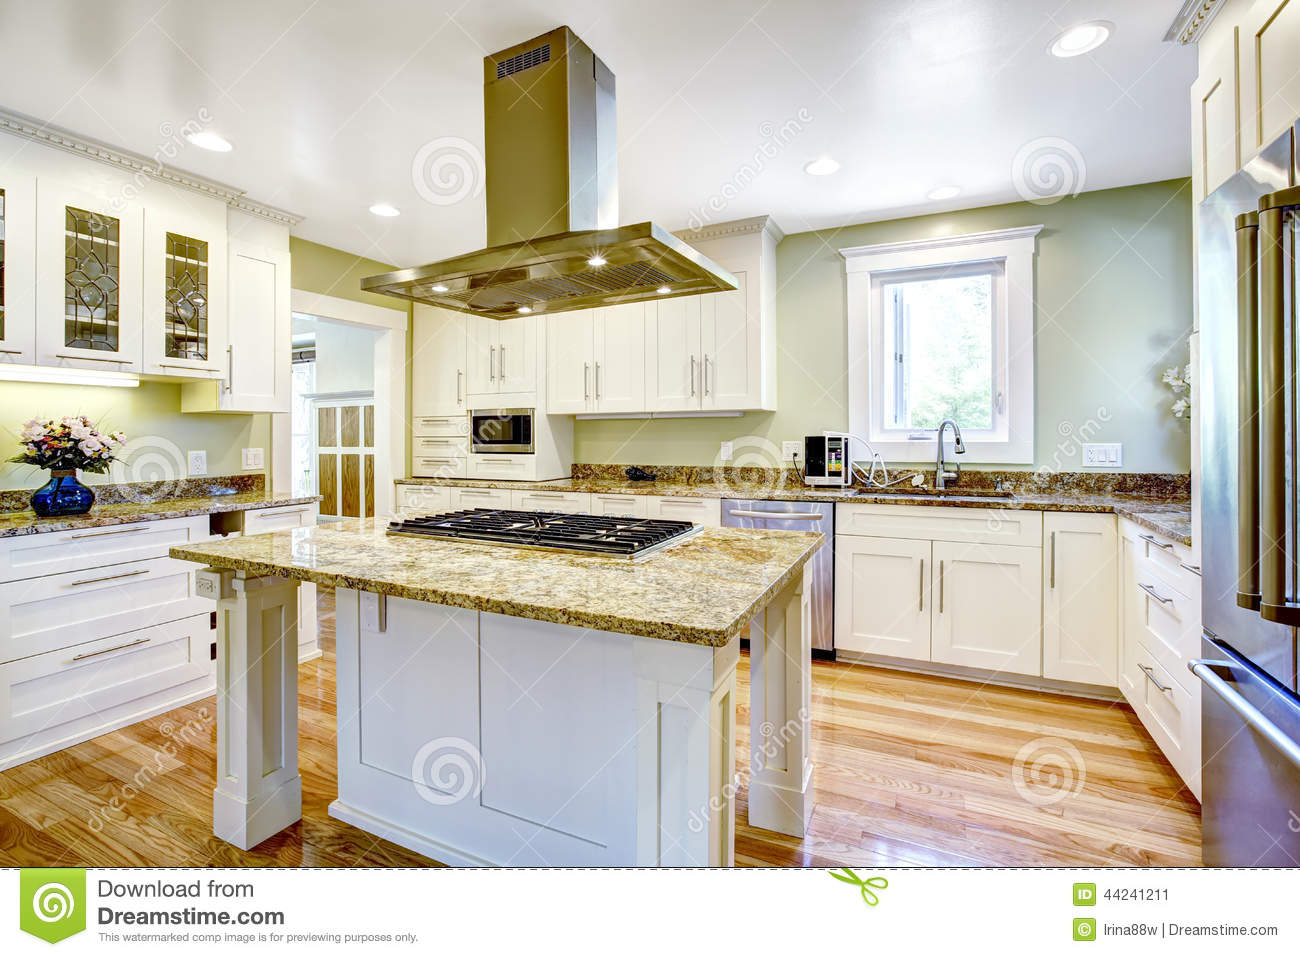 Kitchen Island With Built-in Stove, Granite Top And Hood Stock Image ...